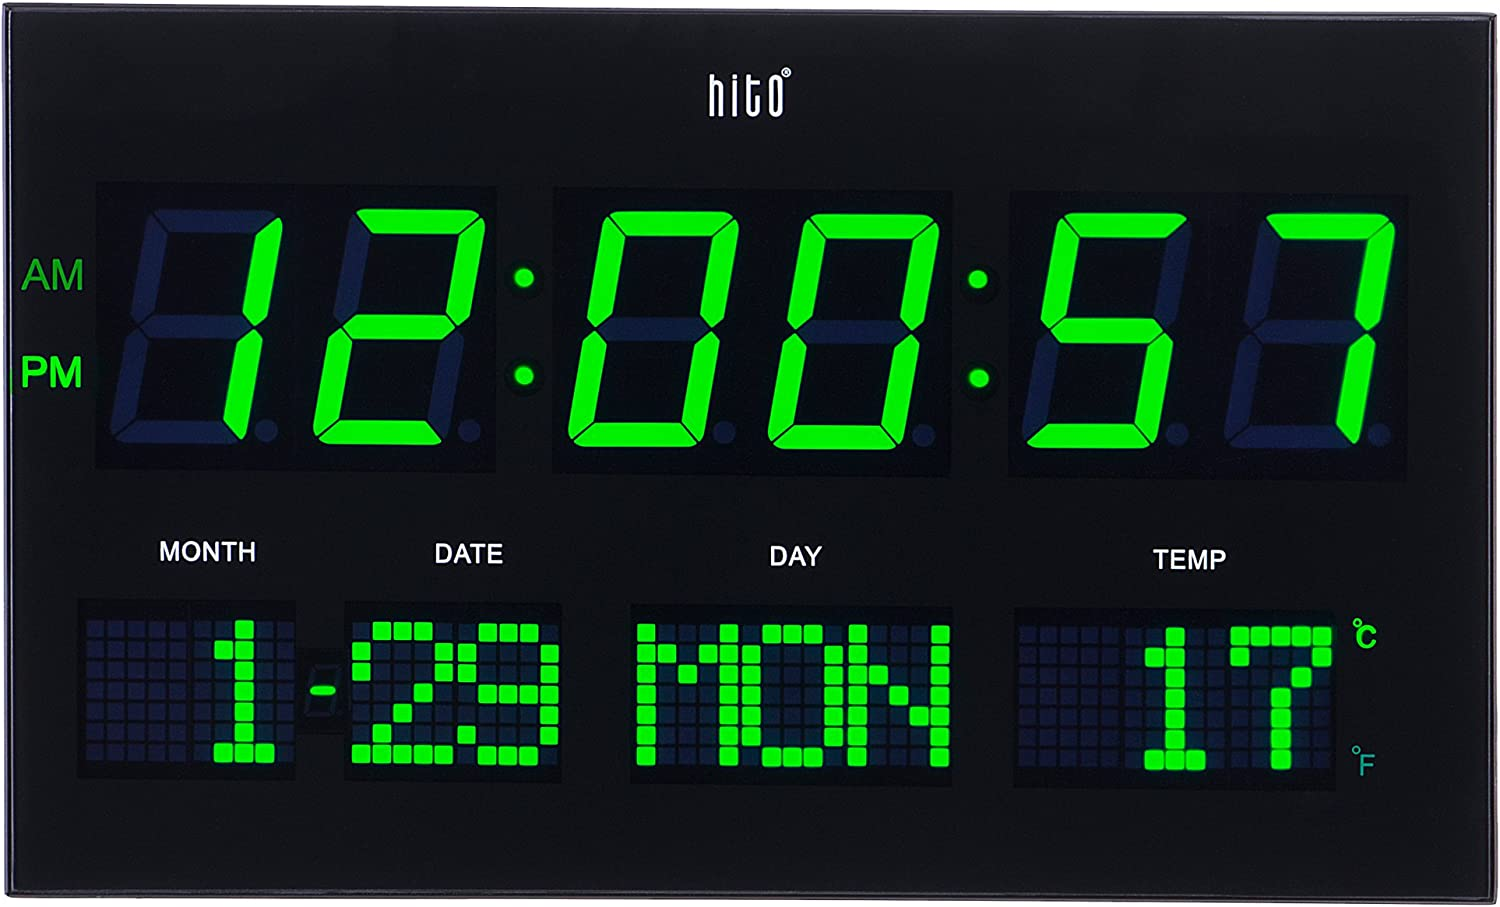 """hito 14.2"""" Large Oversized LED Wall Clock Seconds Date Day Indoor Temperature Adjustable Brightness Memory Function Adapter Included Decorative for Living Room Office Conference Room Bedroom (Green)"""